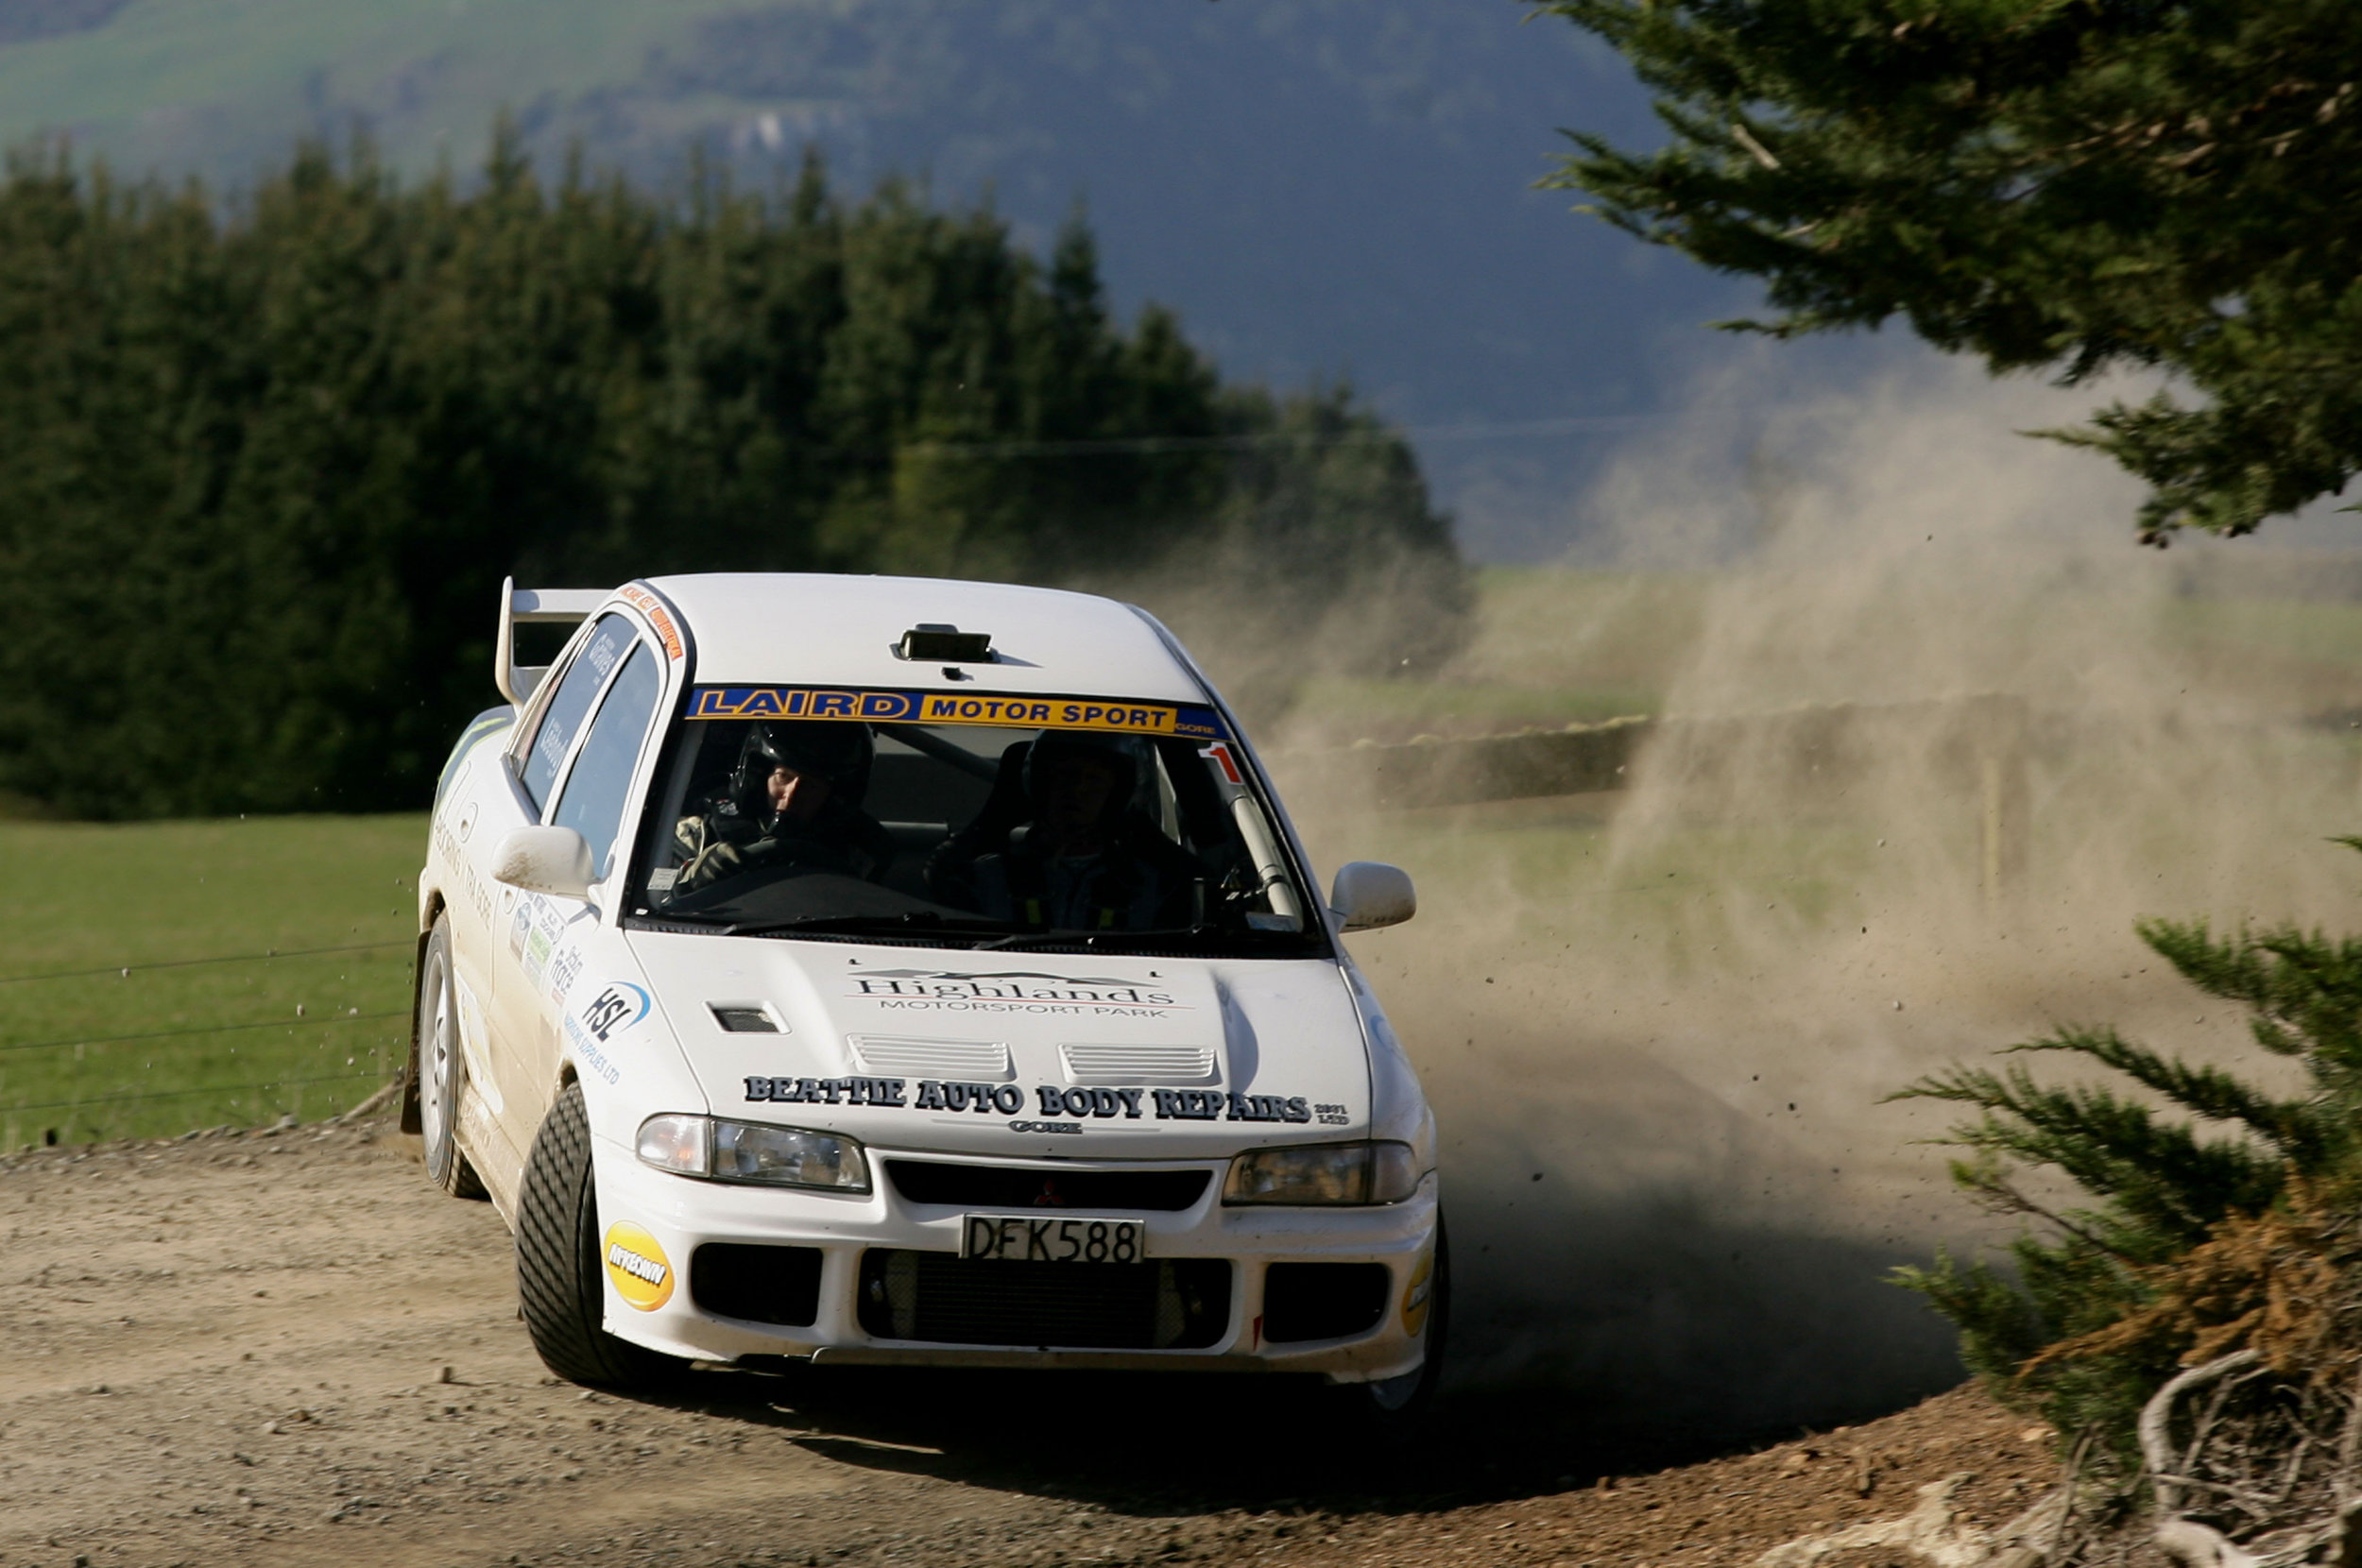 Photo: Defending champions Andrew Graves/Jared Leebody on their way to another Catlins Coast Rally victory in their Mitsubishi EVO 3. Pic: Terry Marshall/ Euan Cameron Photography